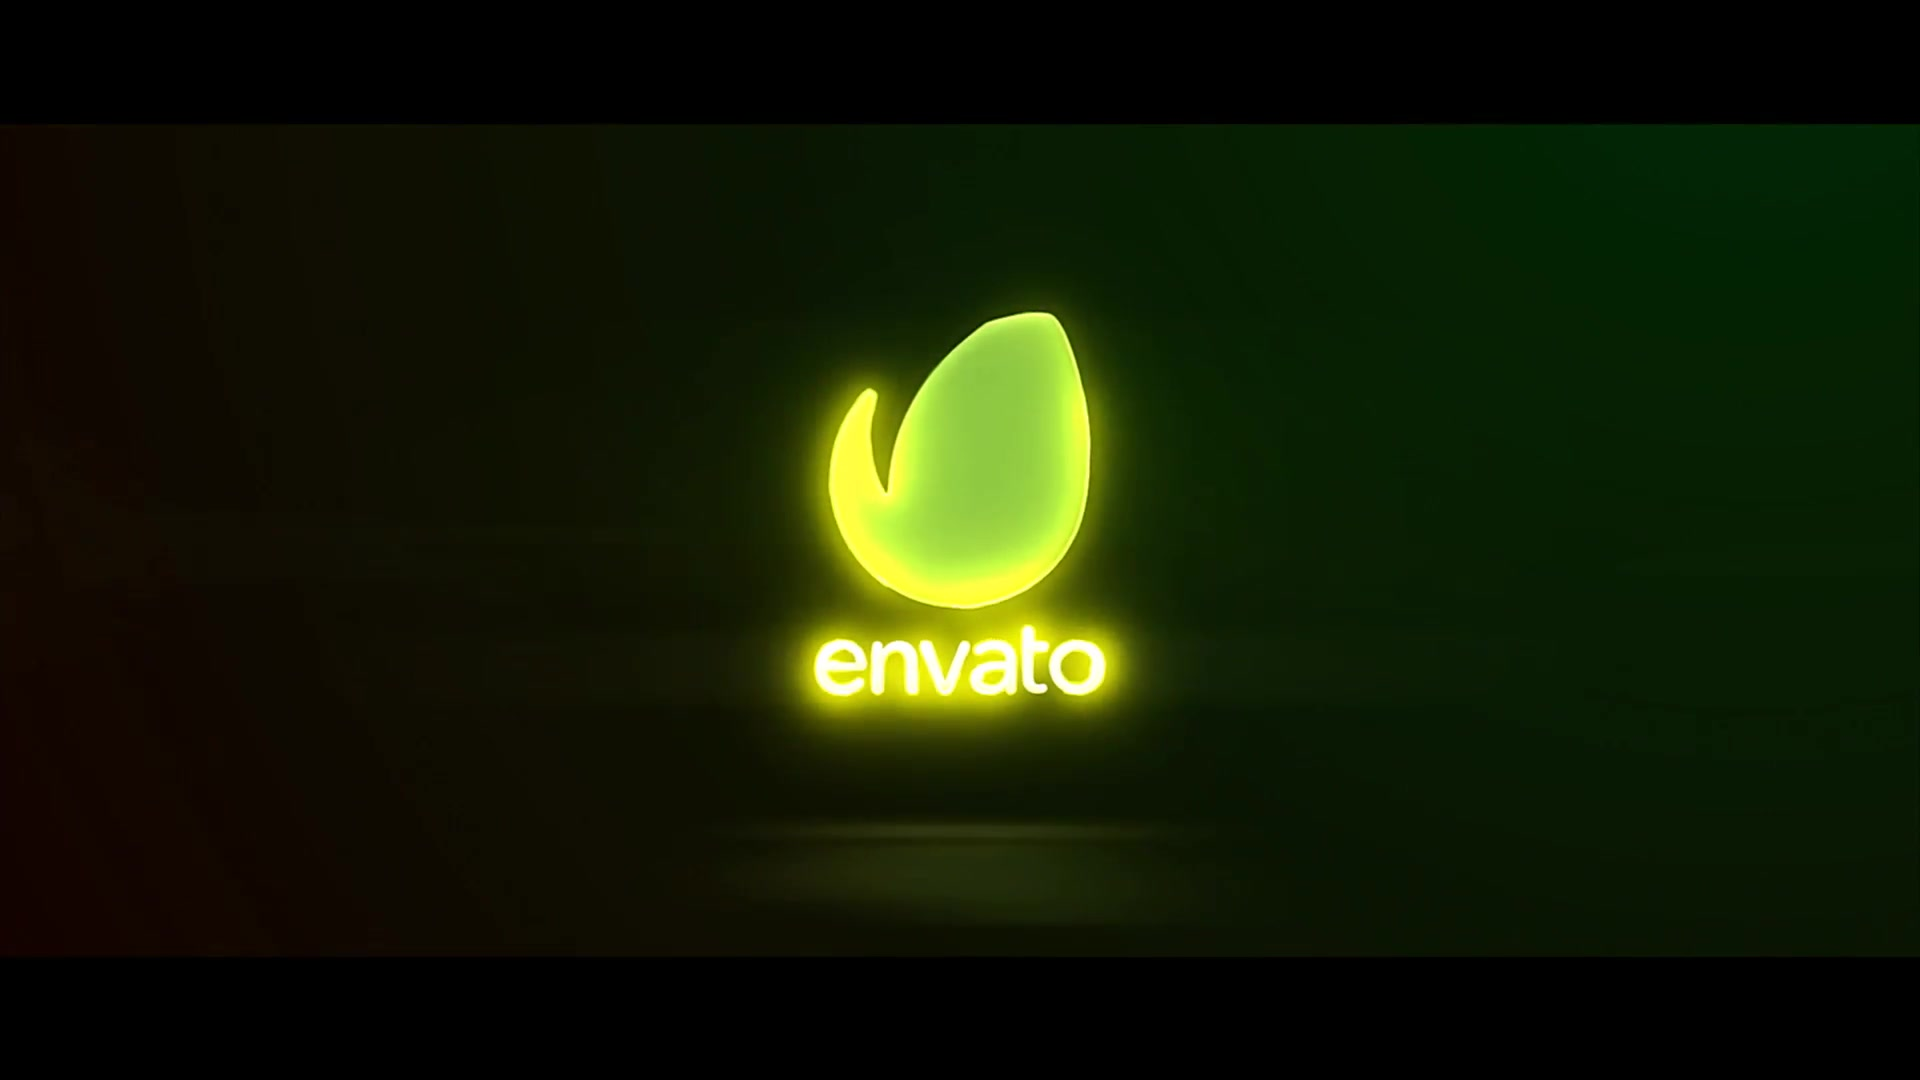 Quick Logo Reveal - Download Videohive 19639874